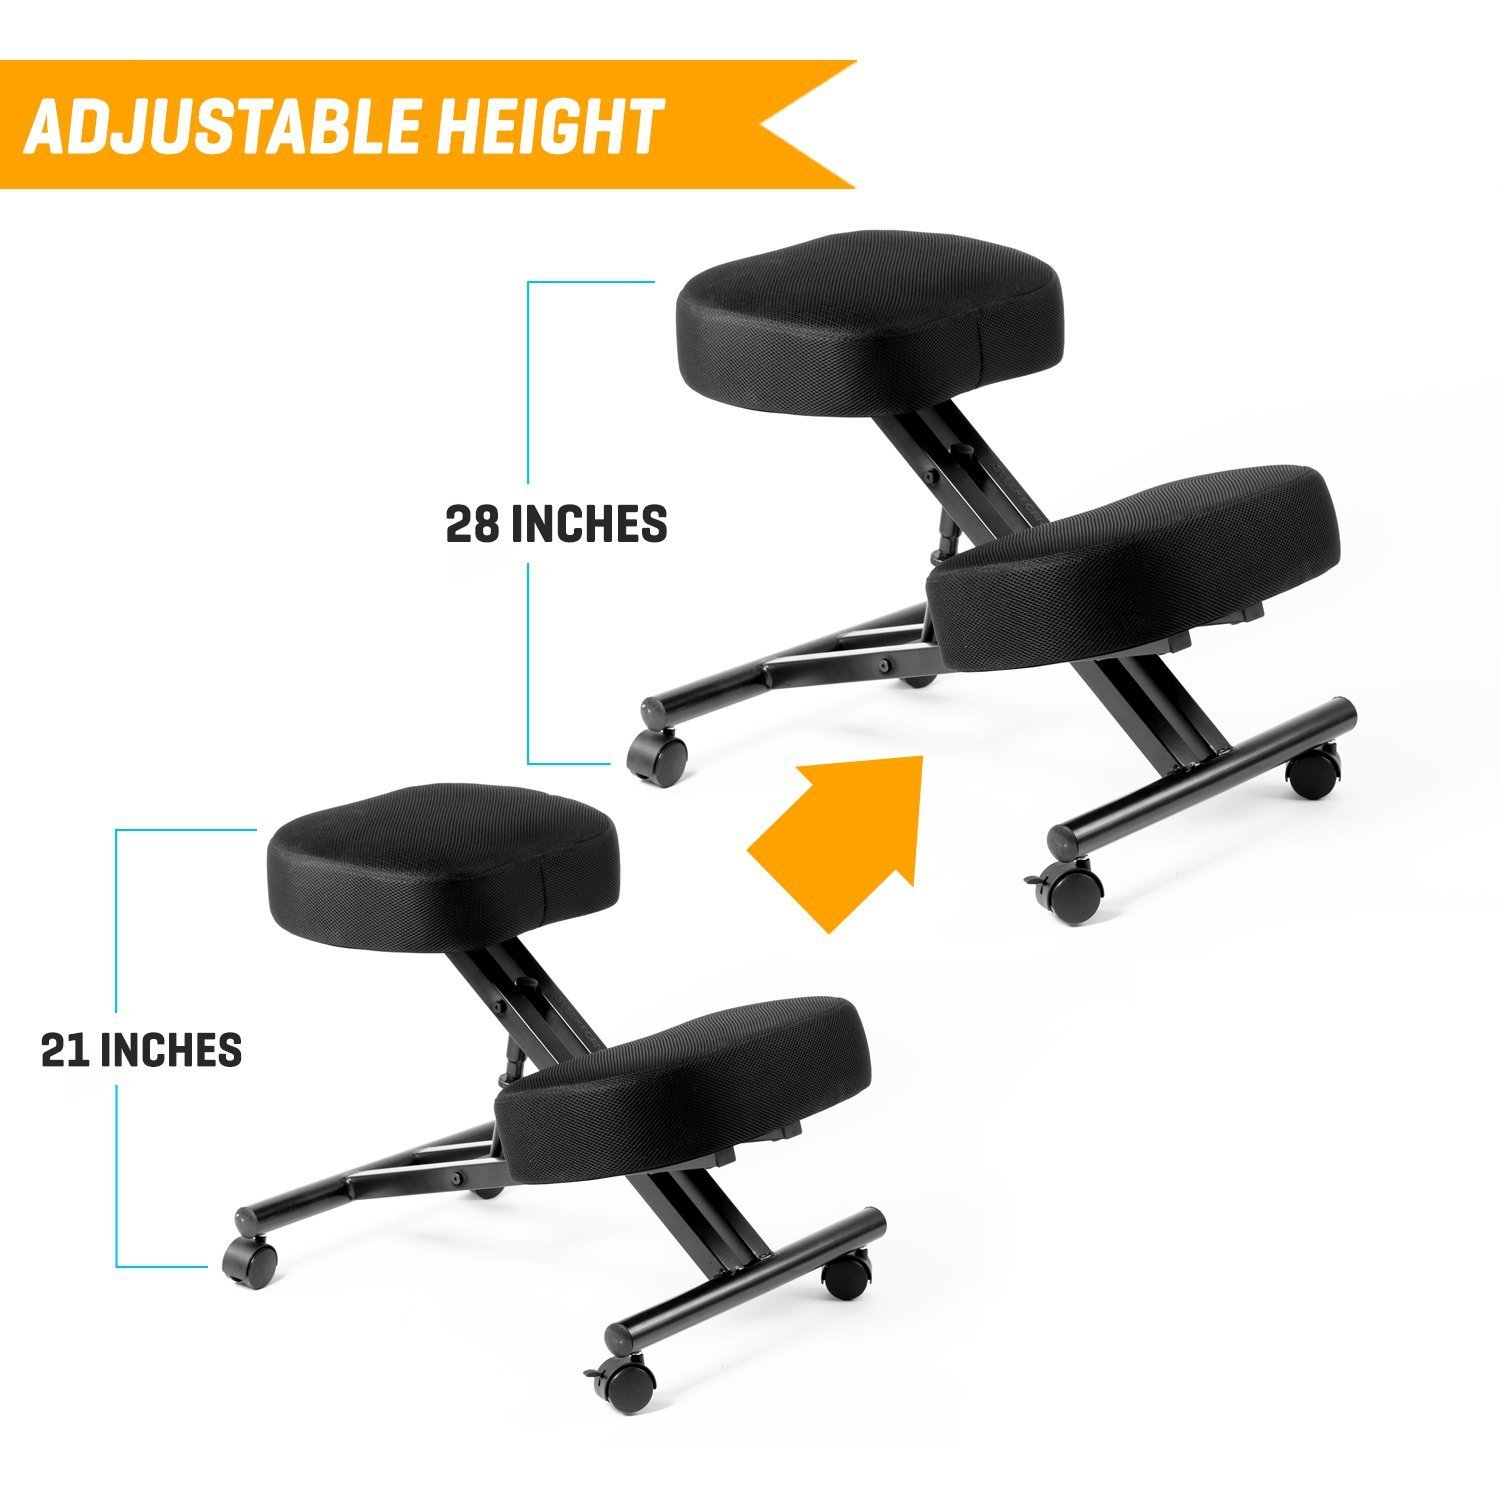 perfect posture chair. Details Perfect Posture Chair P